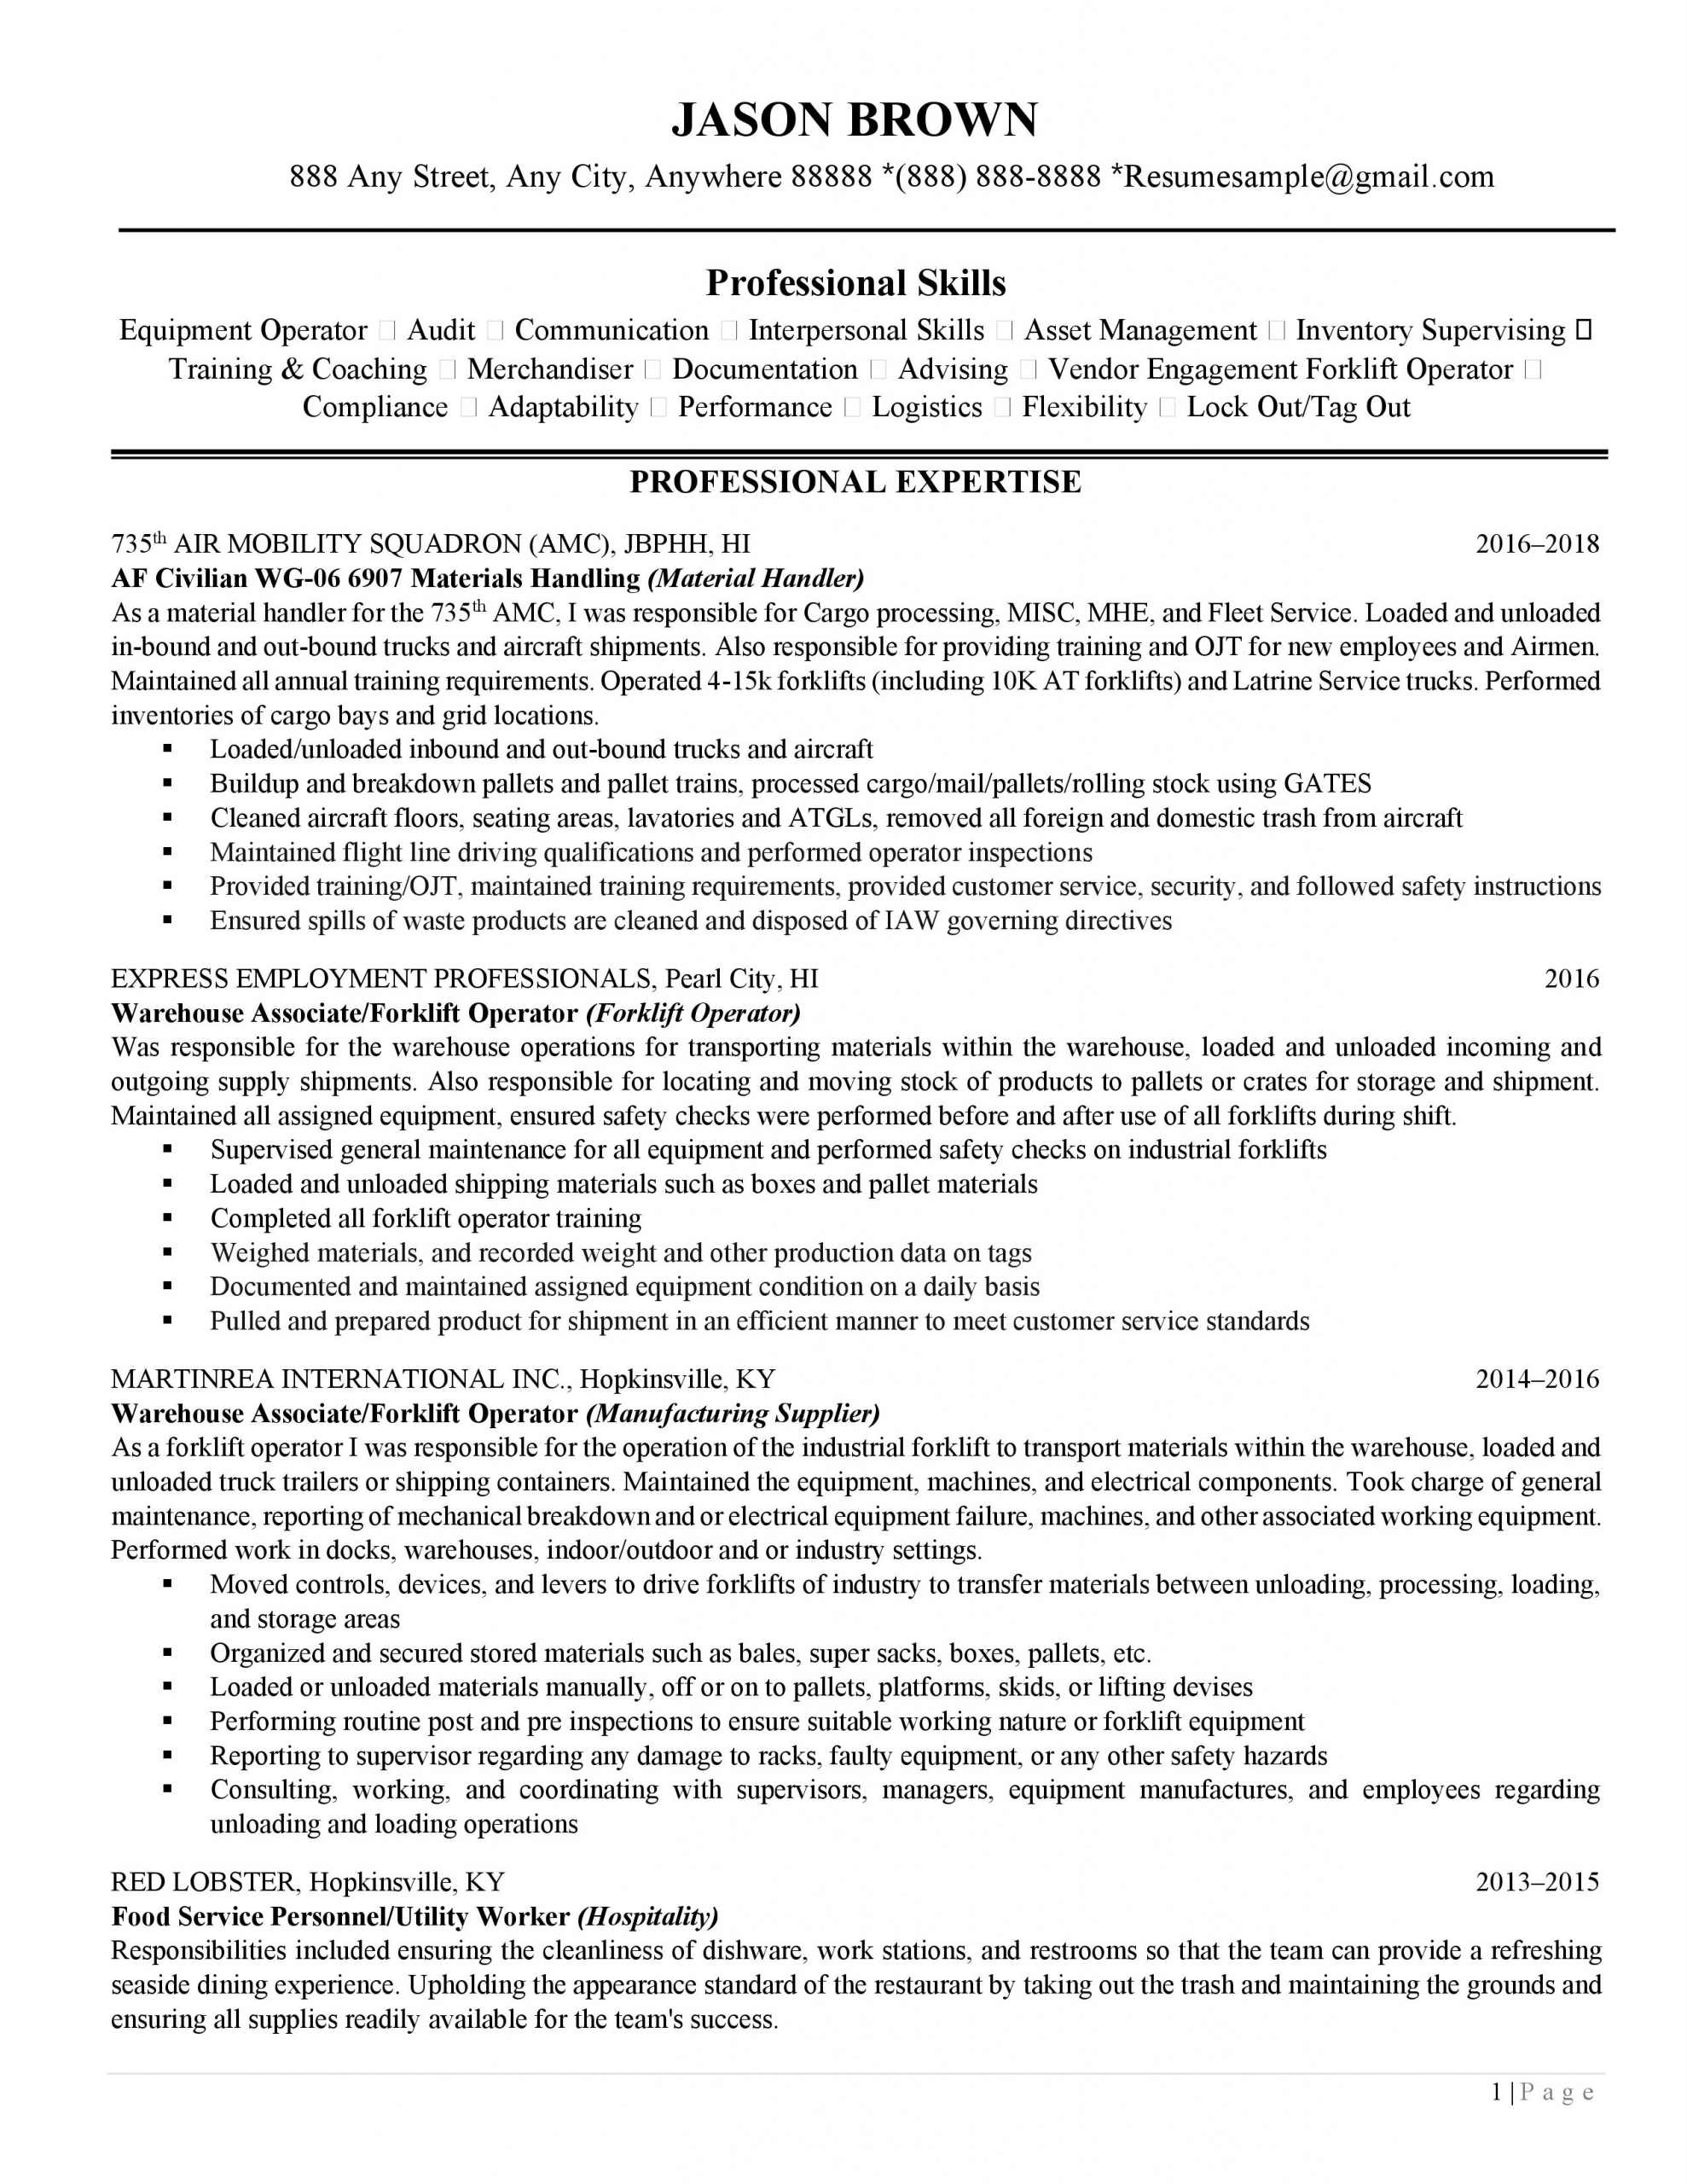 How to write a narrative resume: Page 1 of a traditional resume example